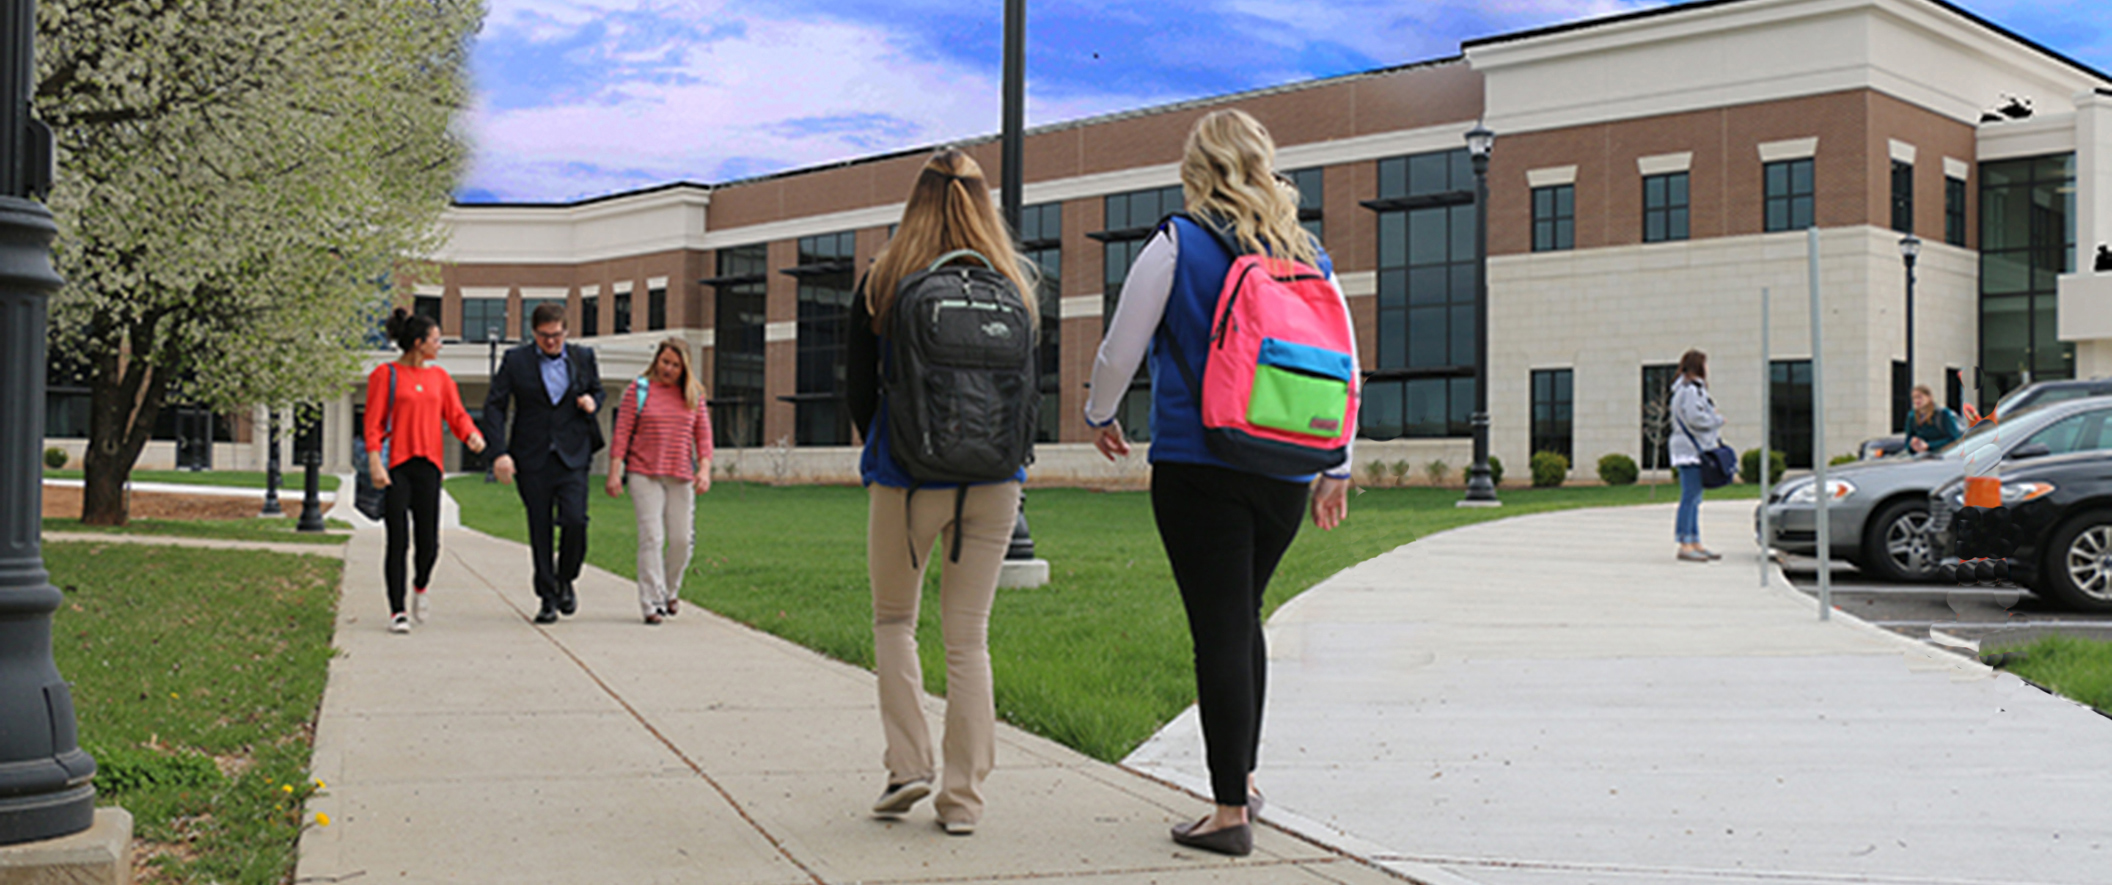 students with backpacks walking around campus on spring day